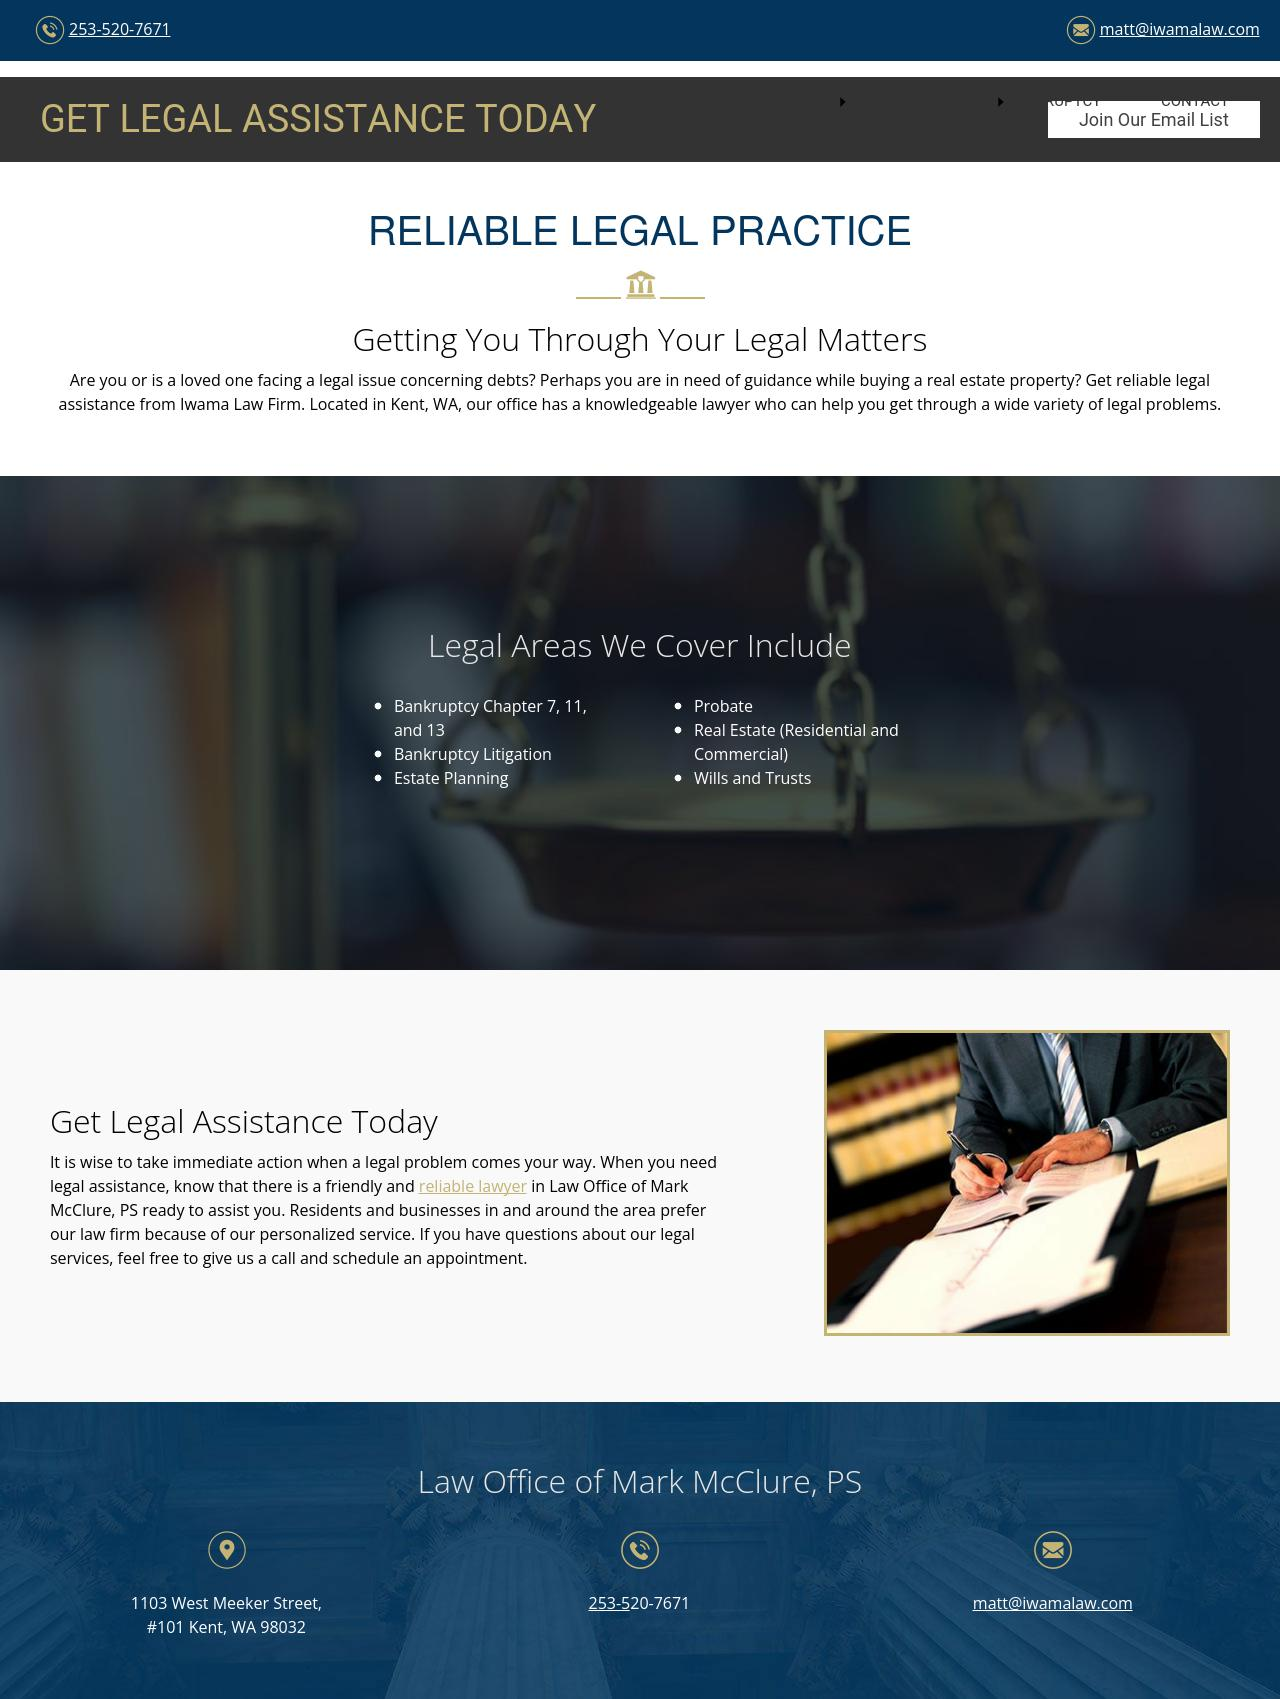 Iwama Law Firm - Kent WA Lawyers